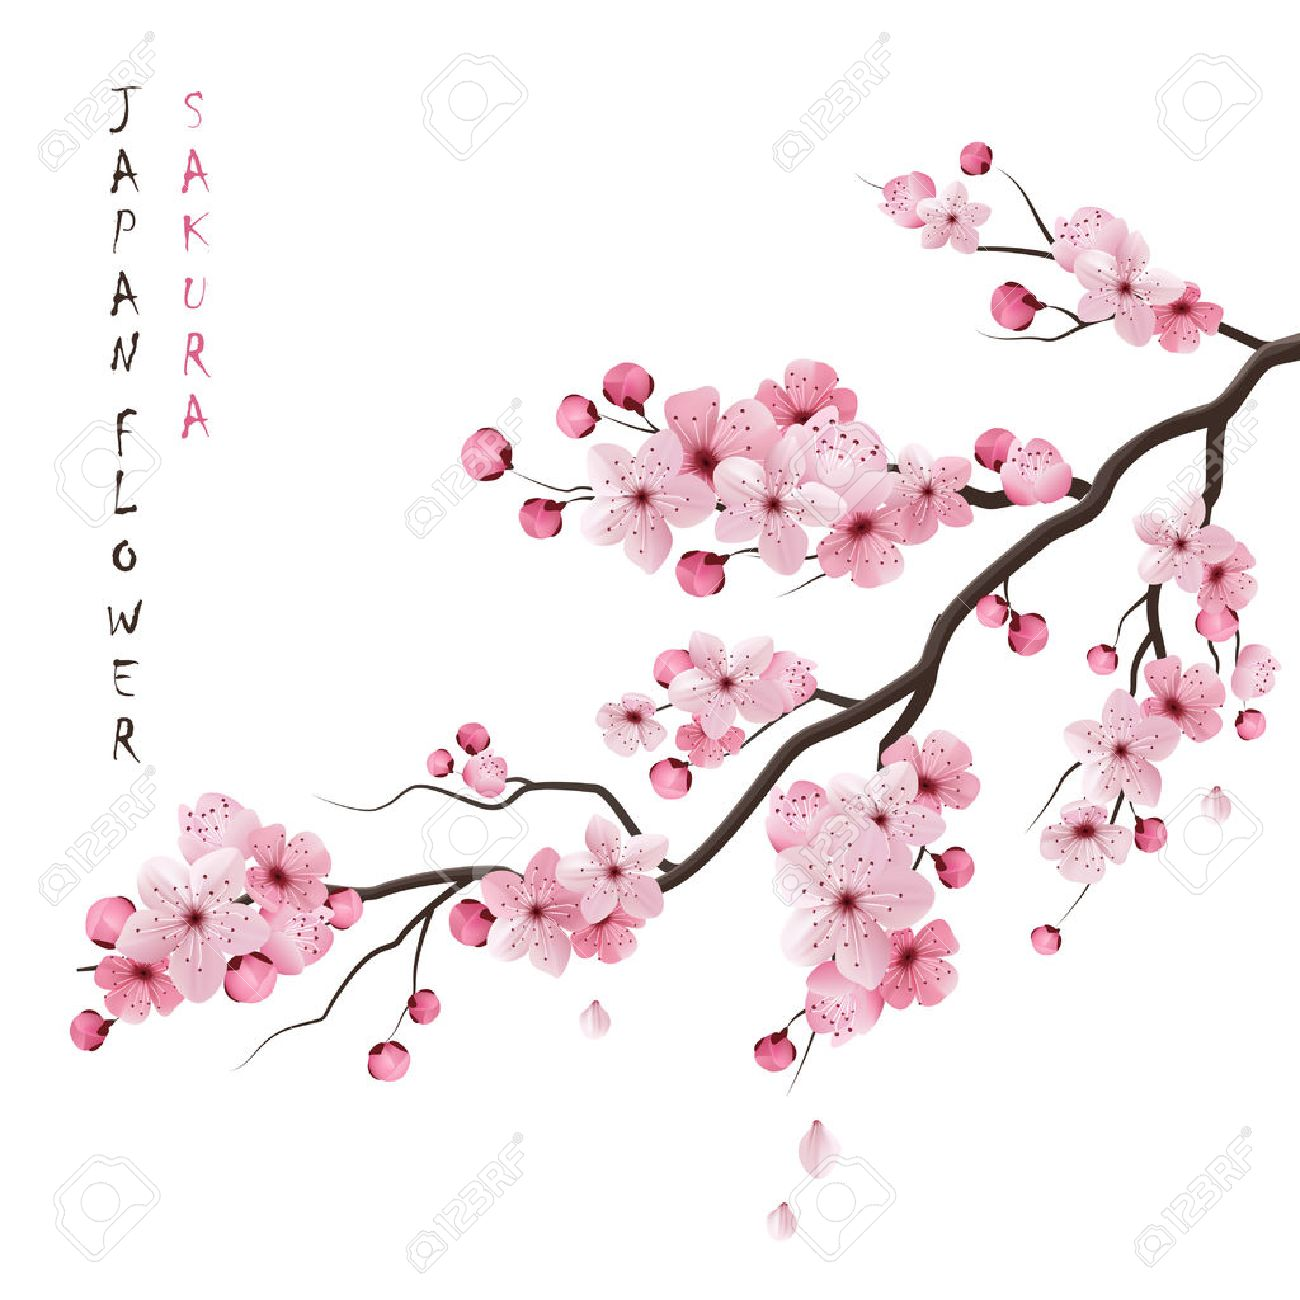 Realistic sakura japan cherry branch with blooming flowers vector illustration - 50704476